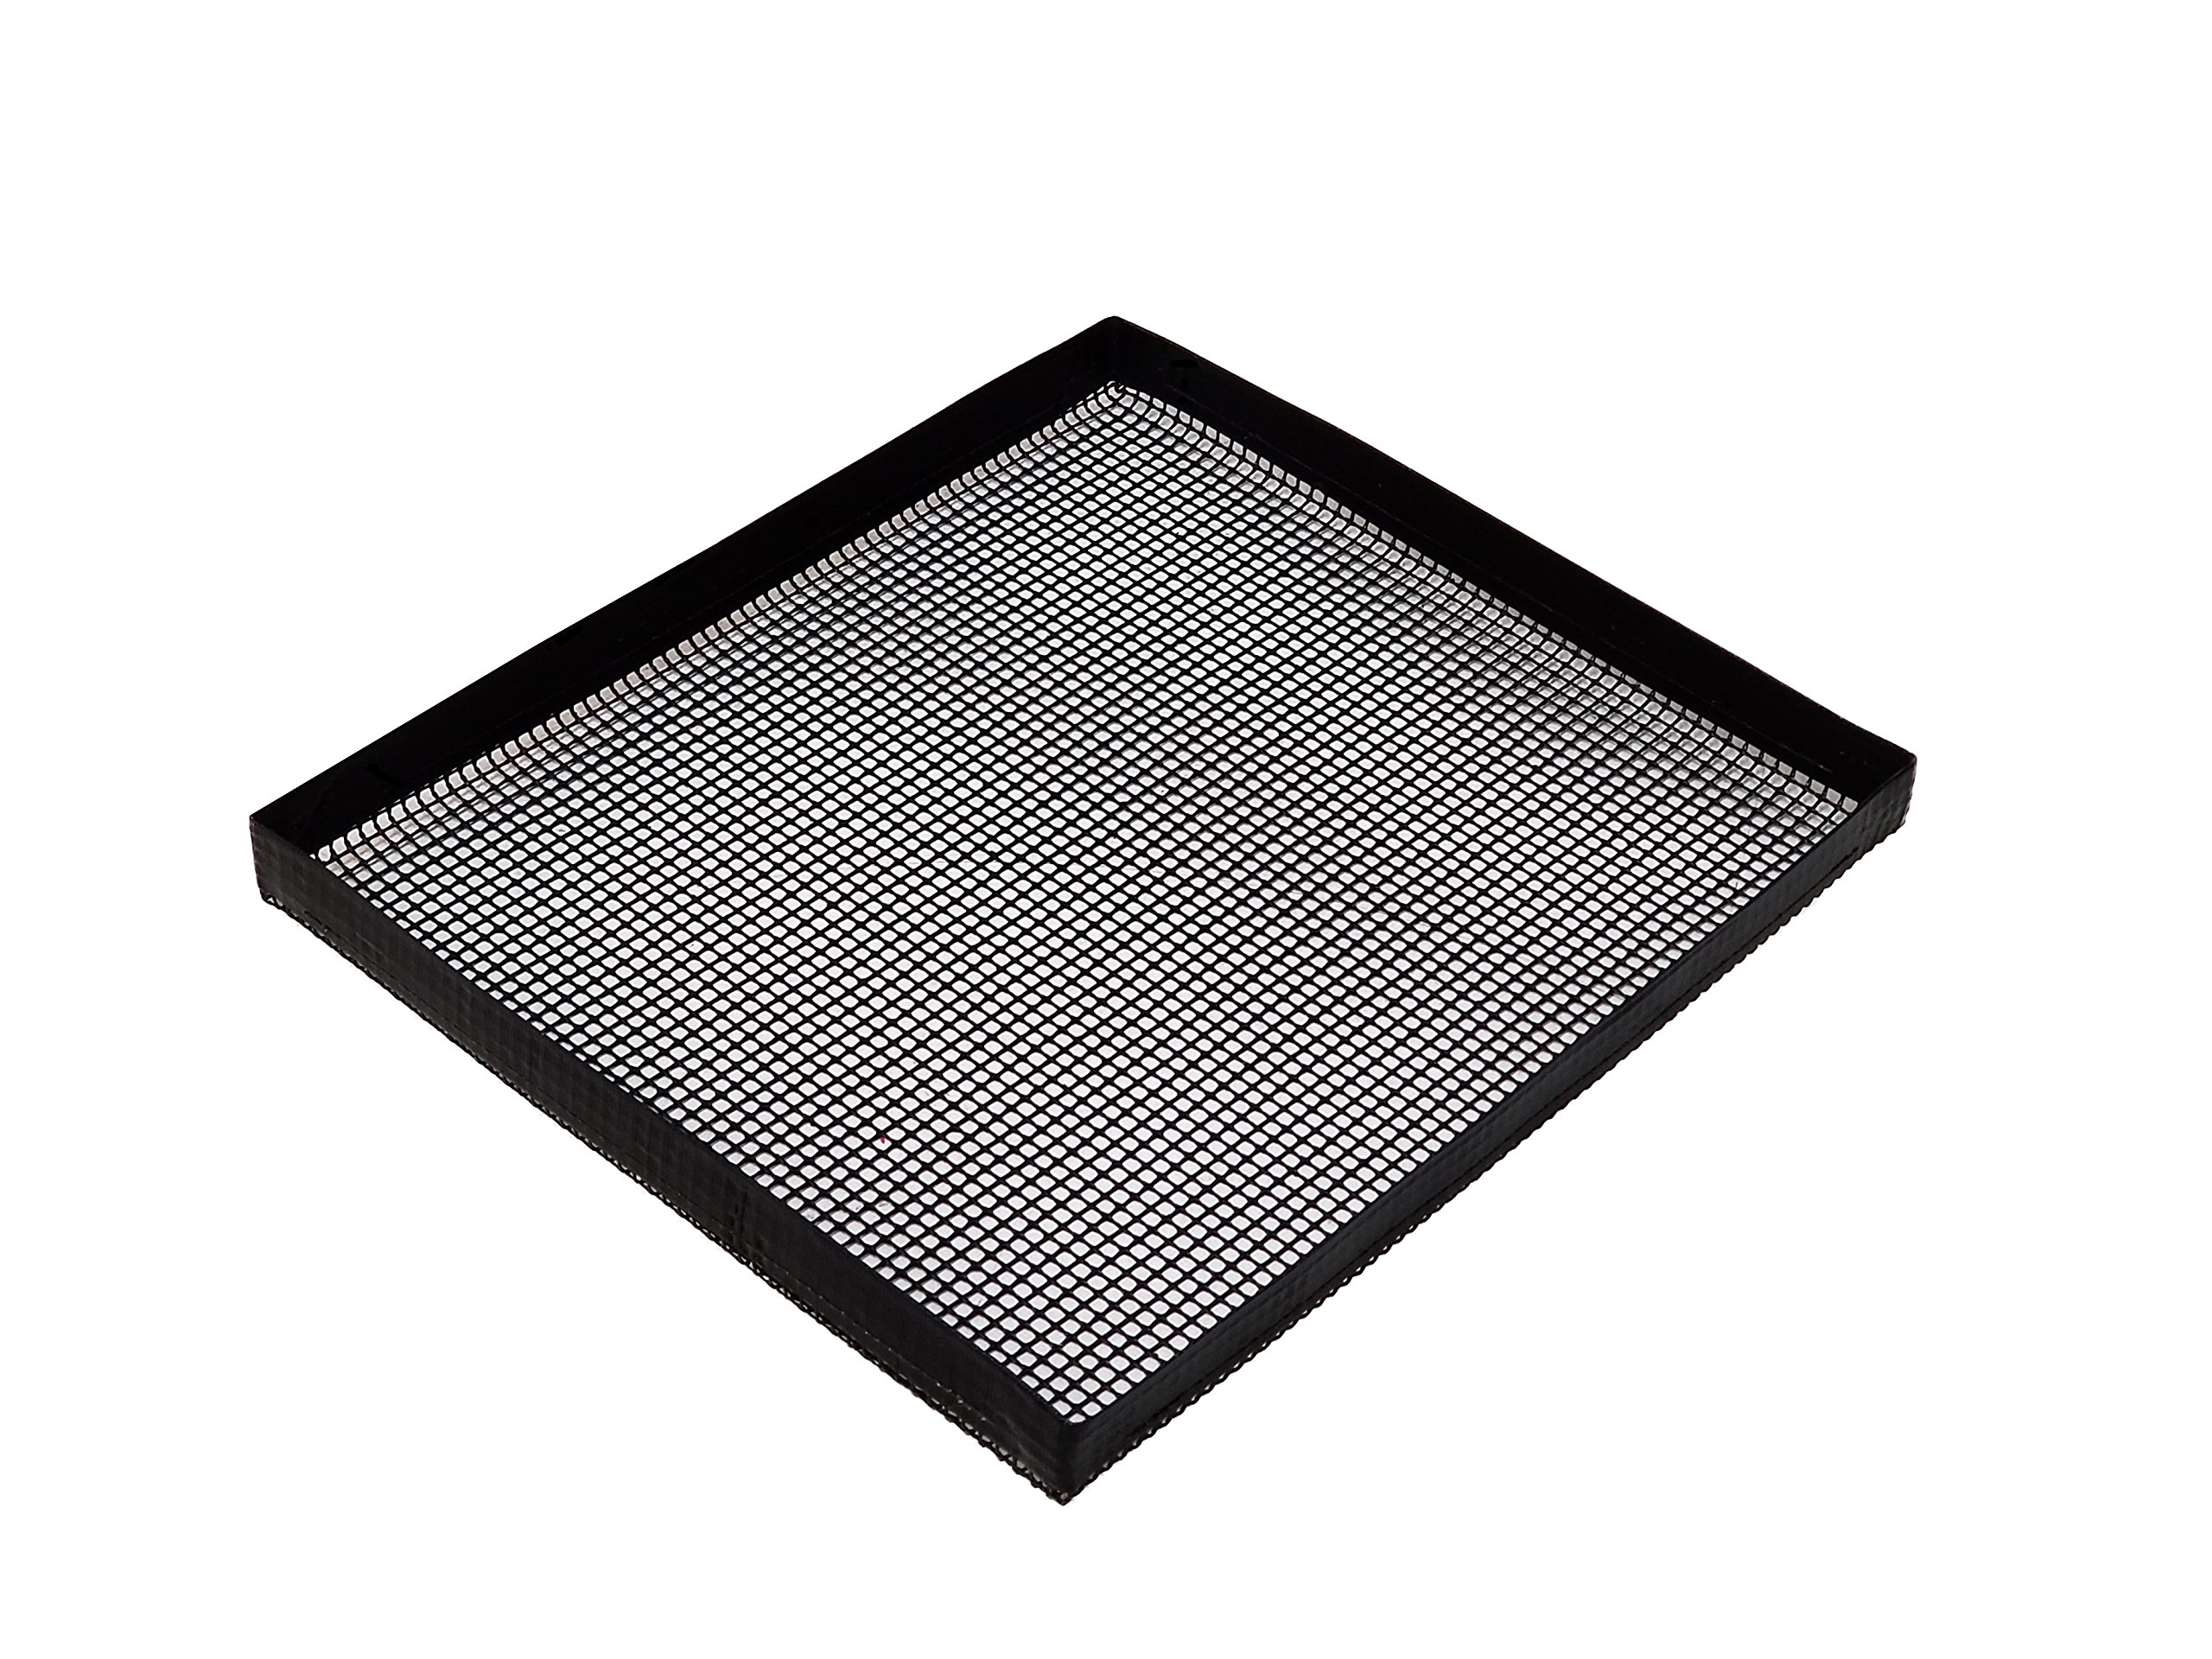 11.5'' X 13'' PTFE Wide Mesh Oven Basket for TurboChef, Merrychef, and Amana (Replaces P80015) and Meets Subway Specification